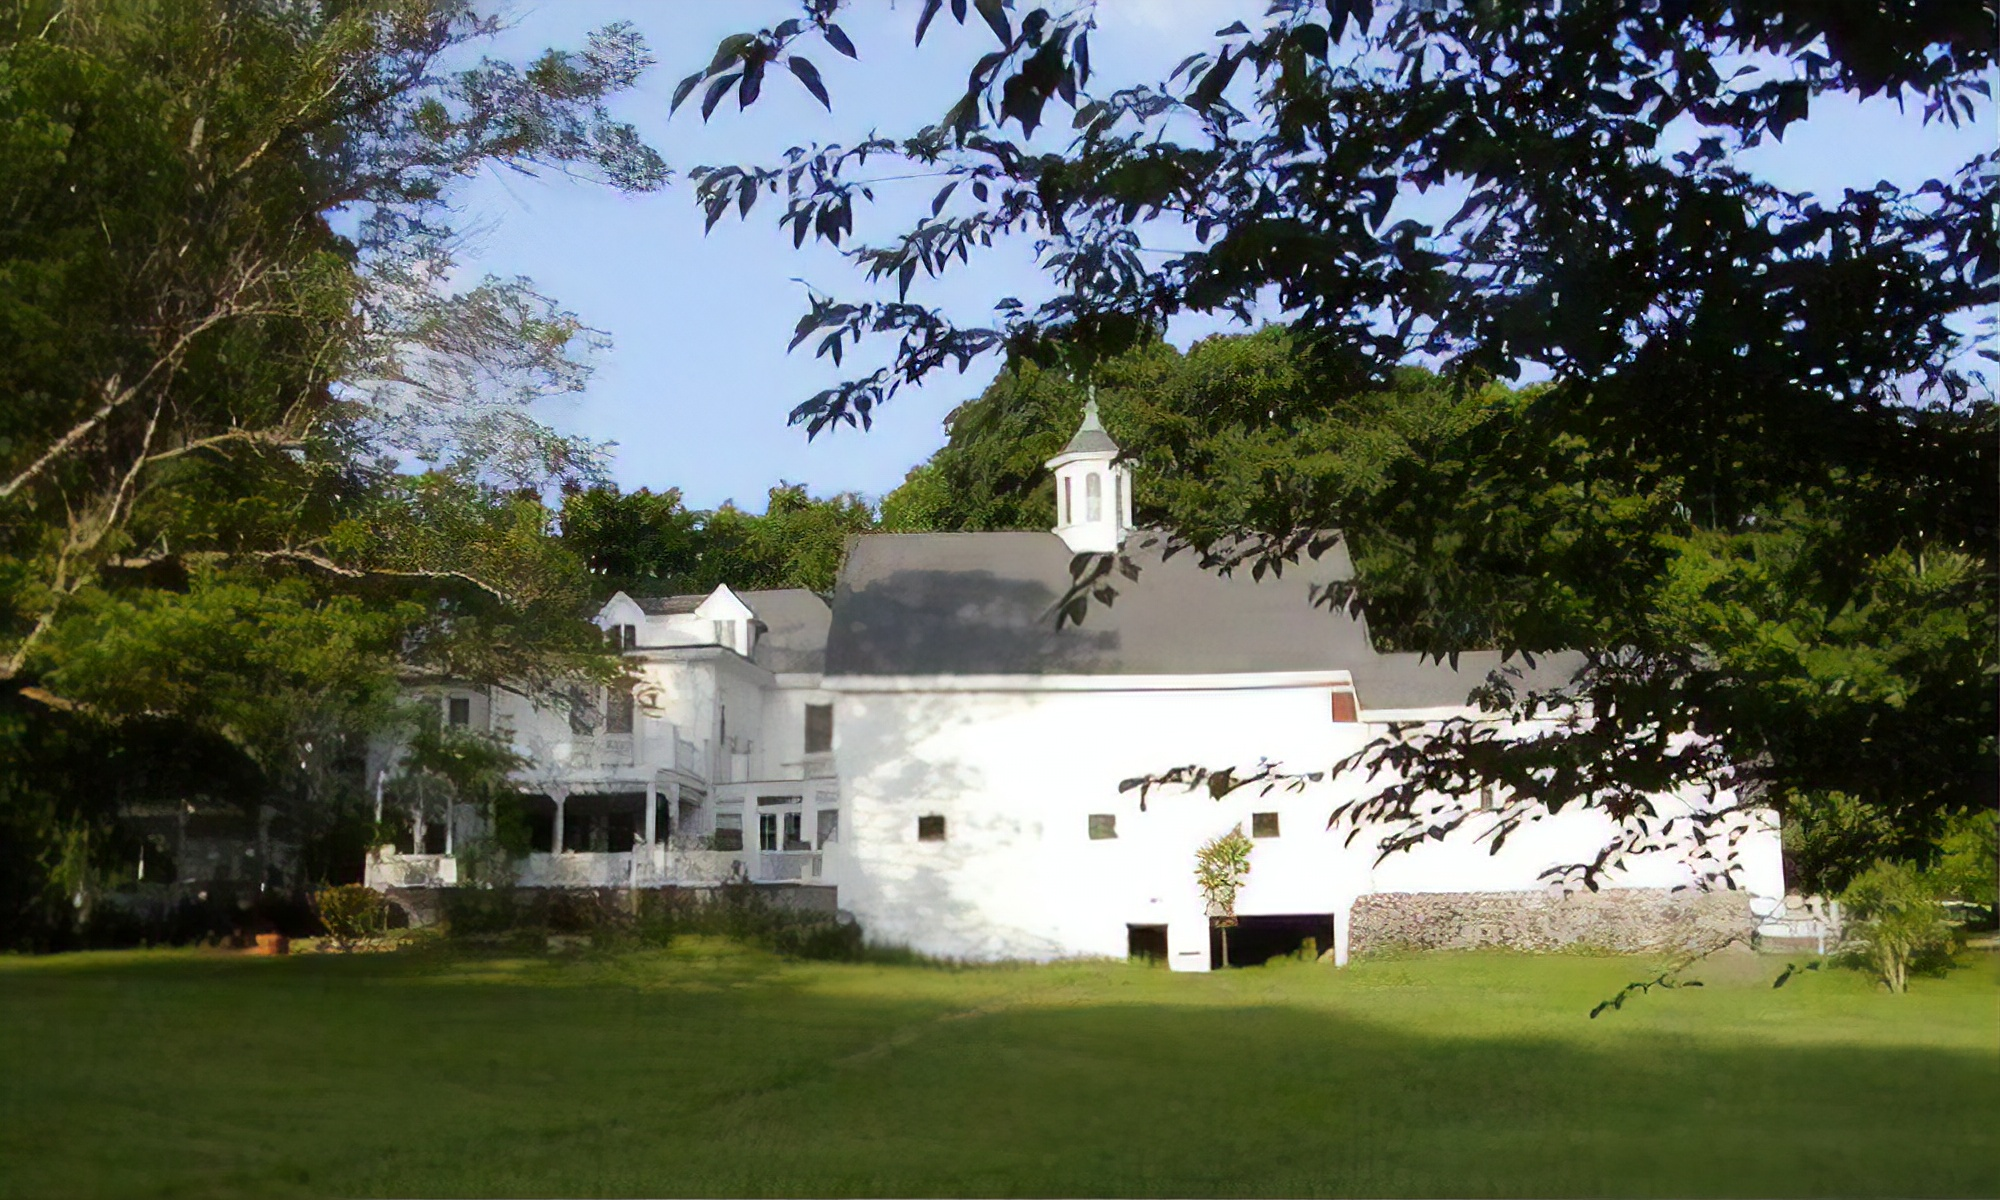 A large white building with a grassy field with trees in the background at Inn On The Horse Farm.